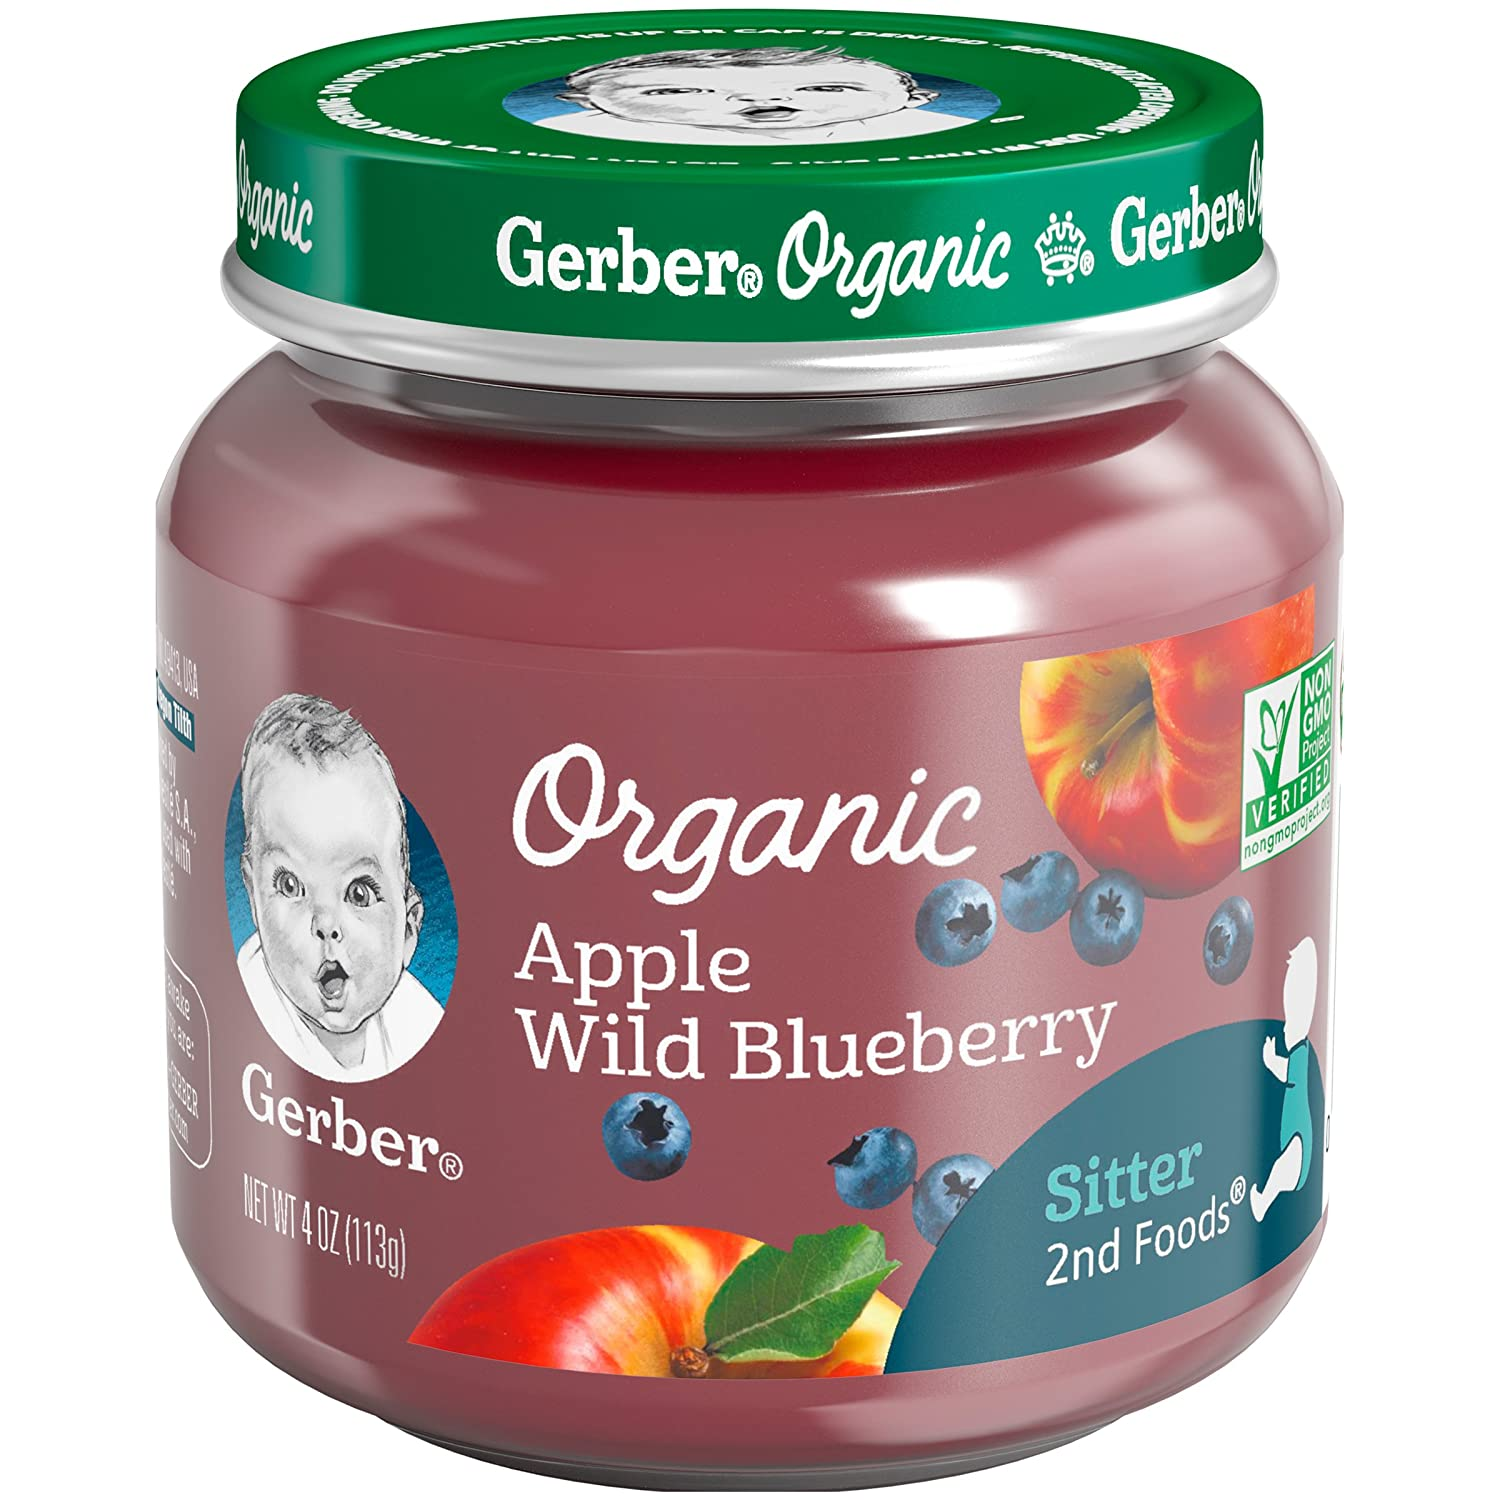 Gerber Purees Organic 2nd Foods Apple Wild Blueberry Baby Food Glass Jar (Pack of 6)